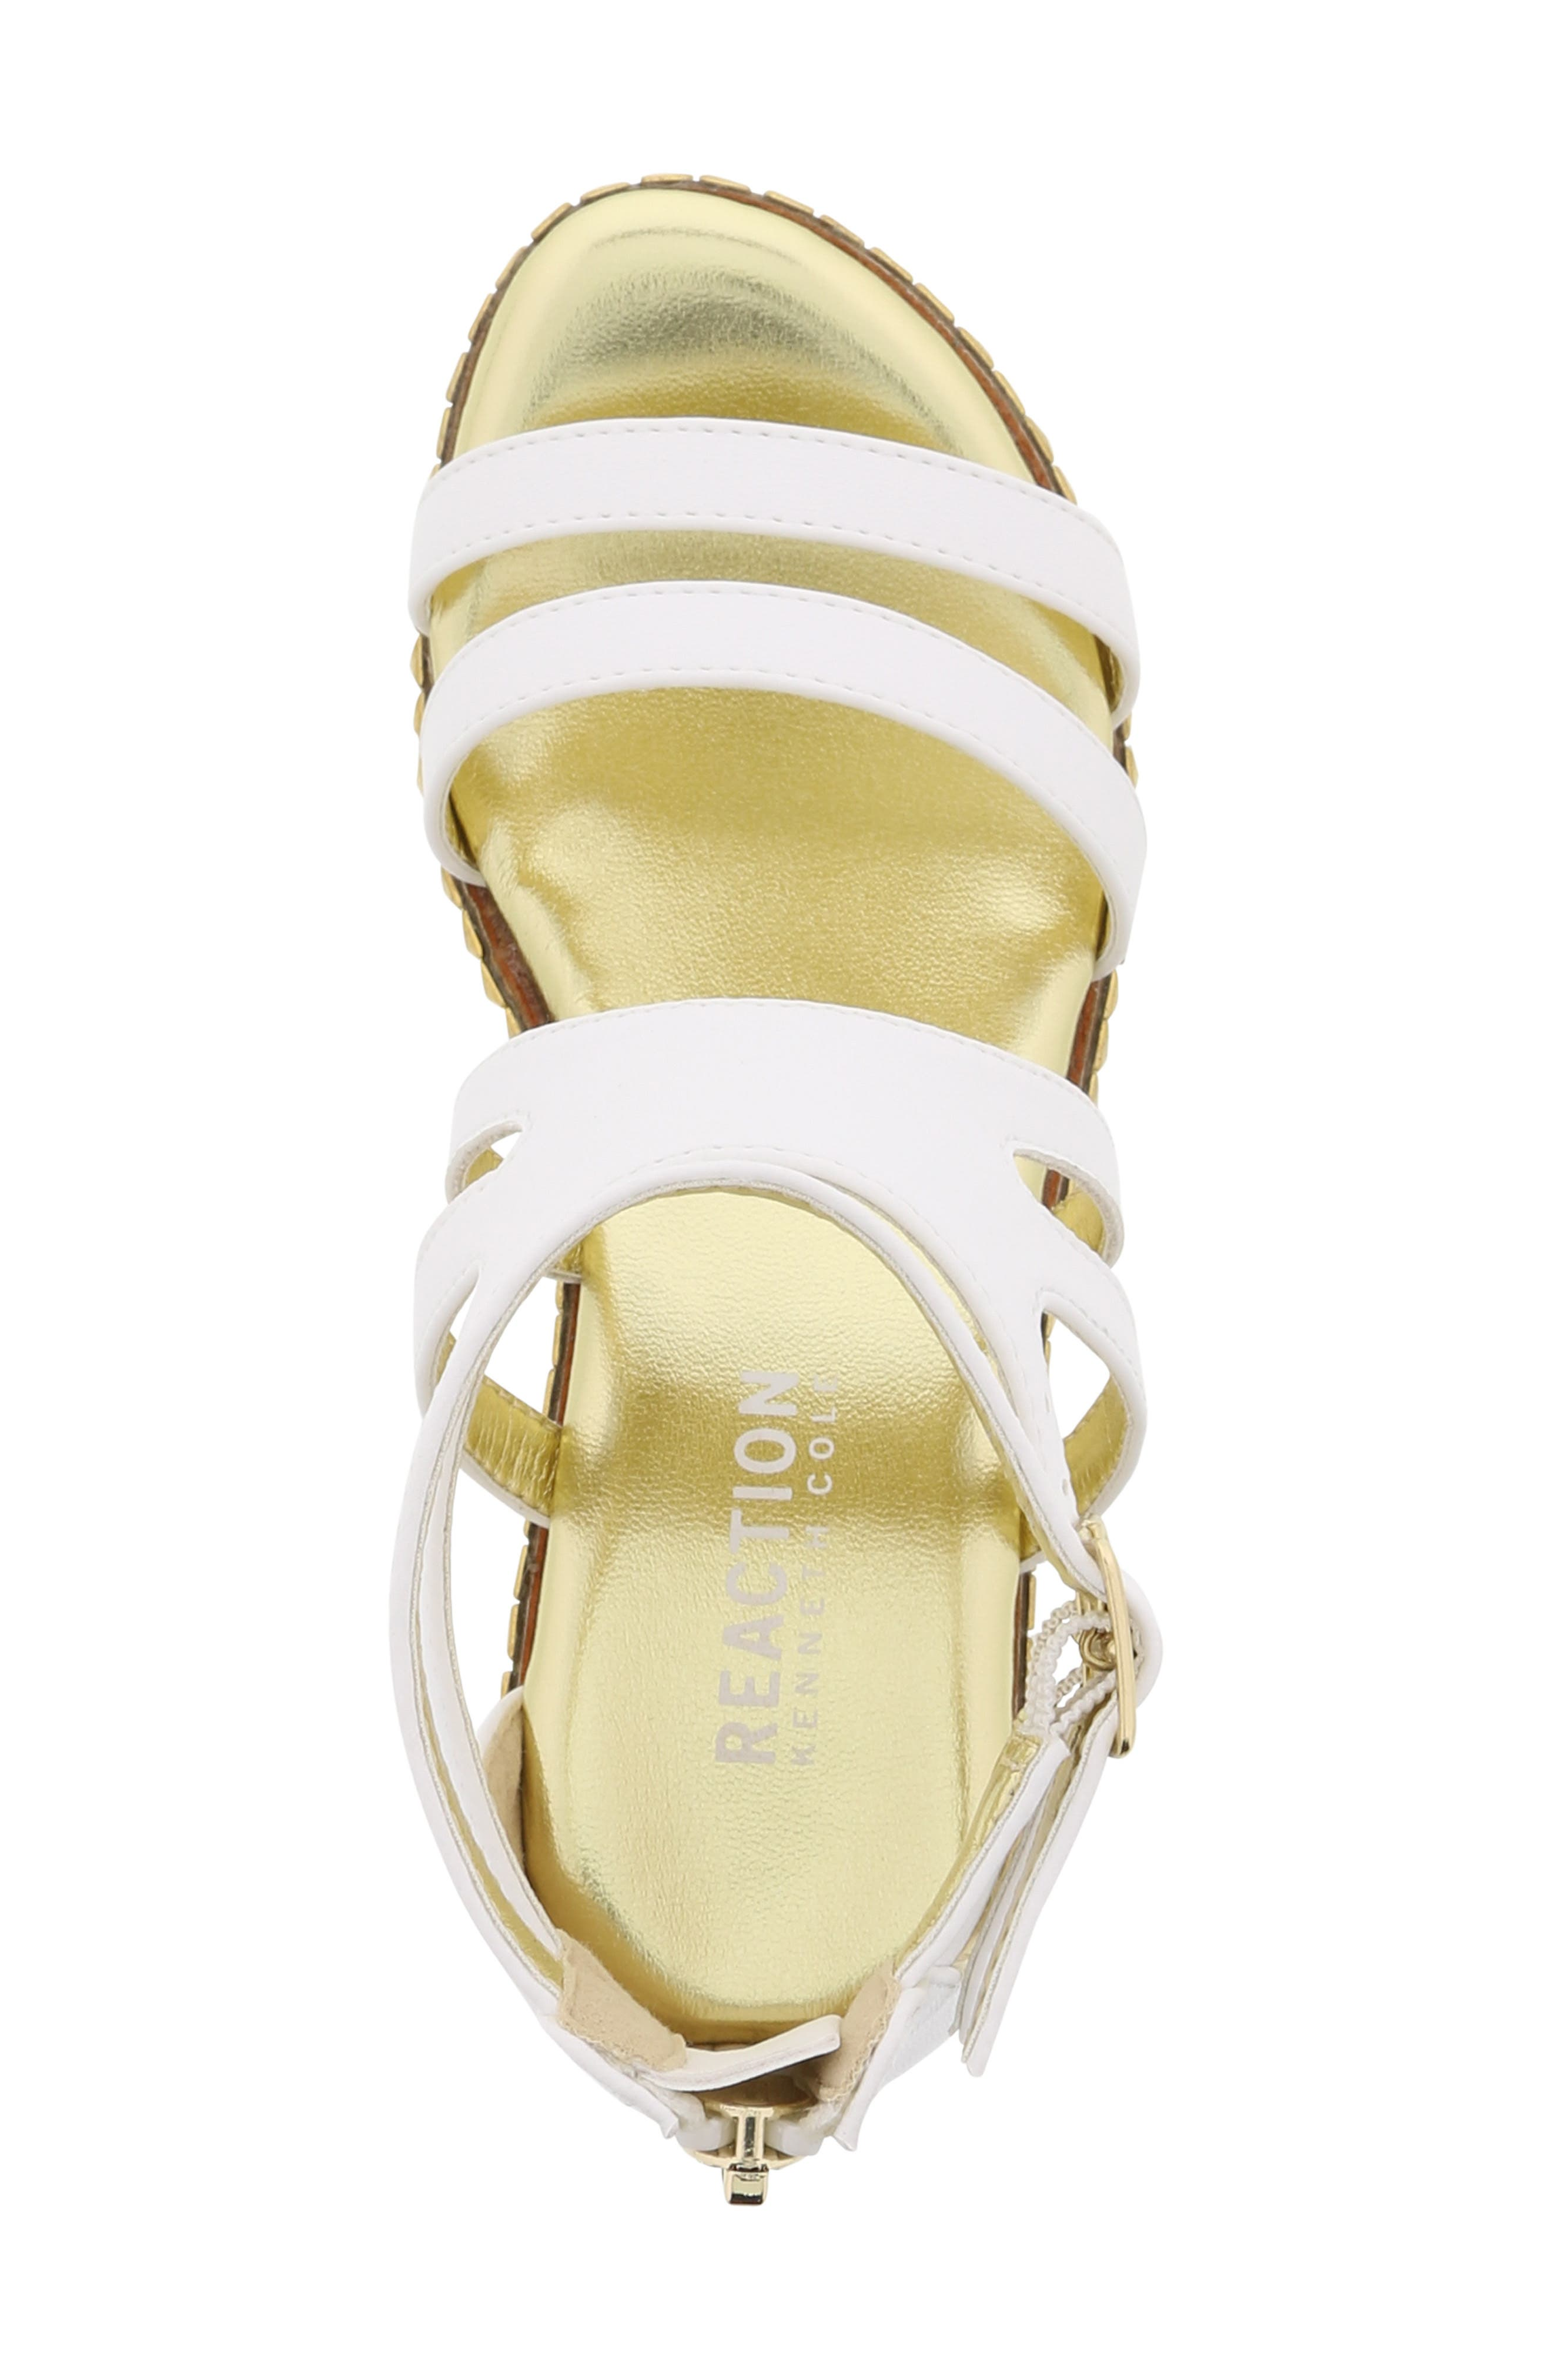 REACTION KENNETH COLE, Reed Splash Wedge Sandal, Alternate thumbnail 5, color, WHITE